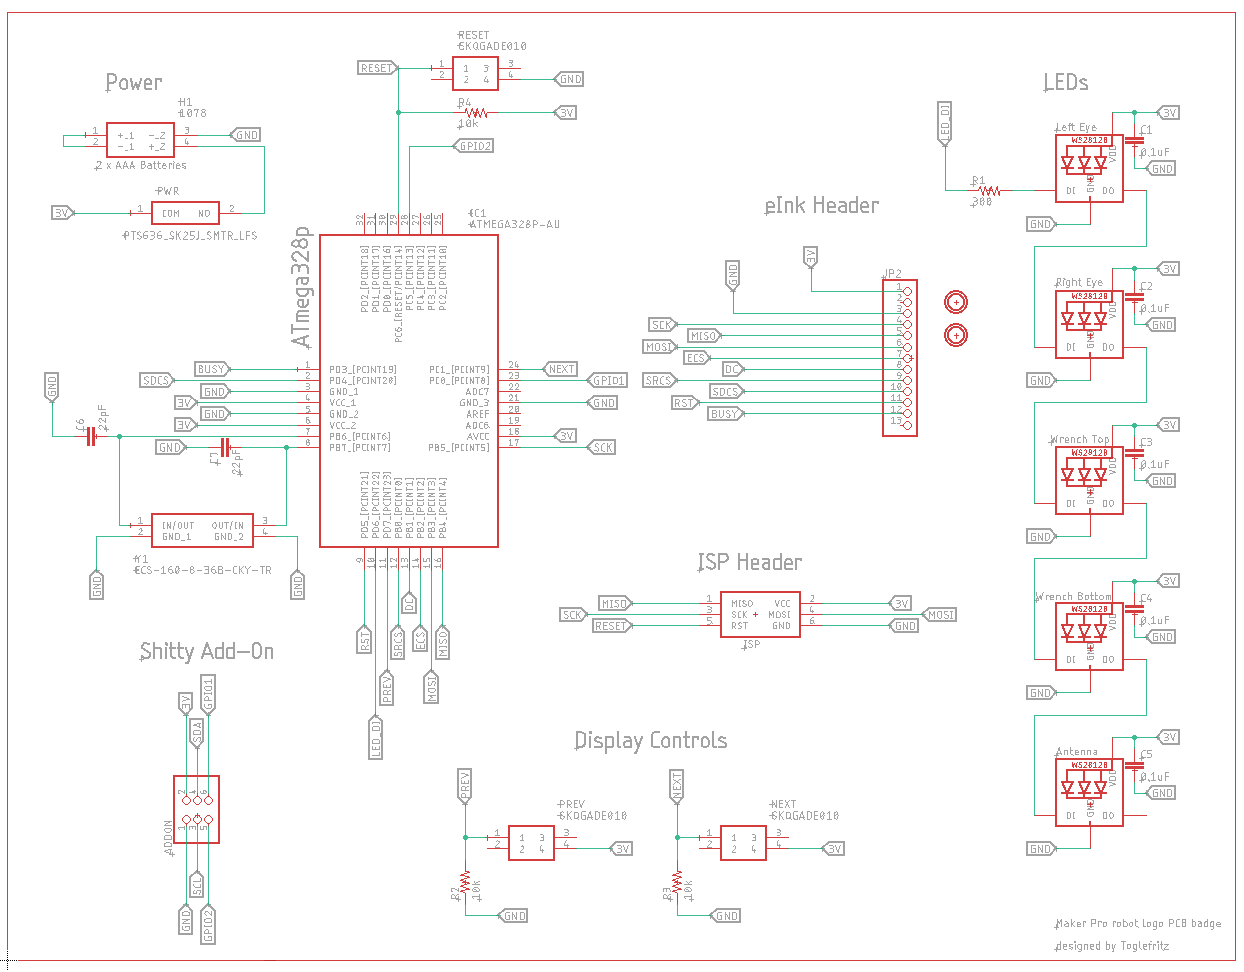 full maker pro robot page schematic